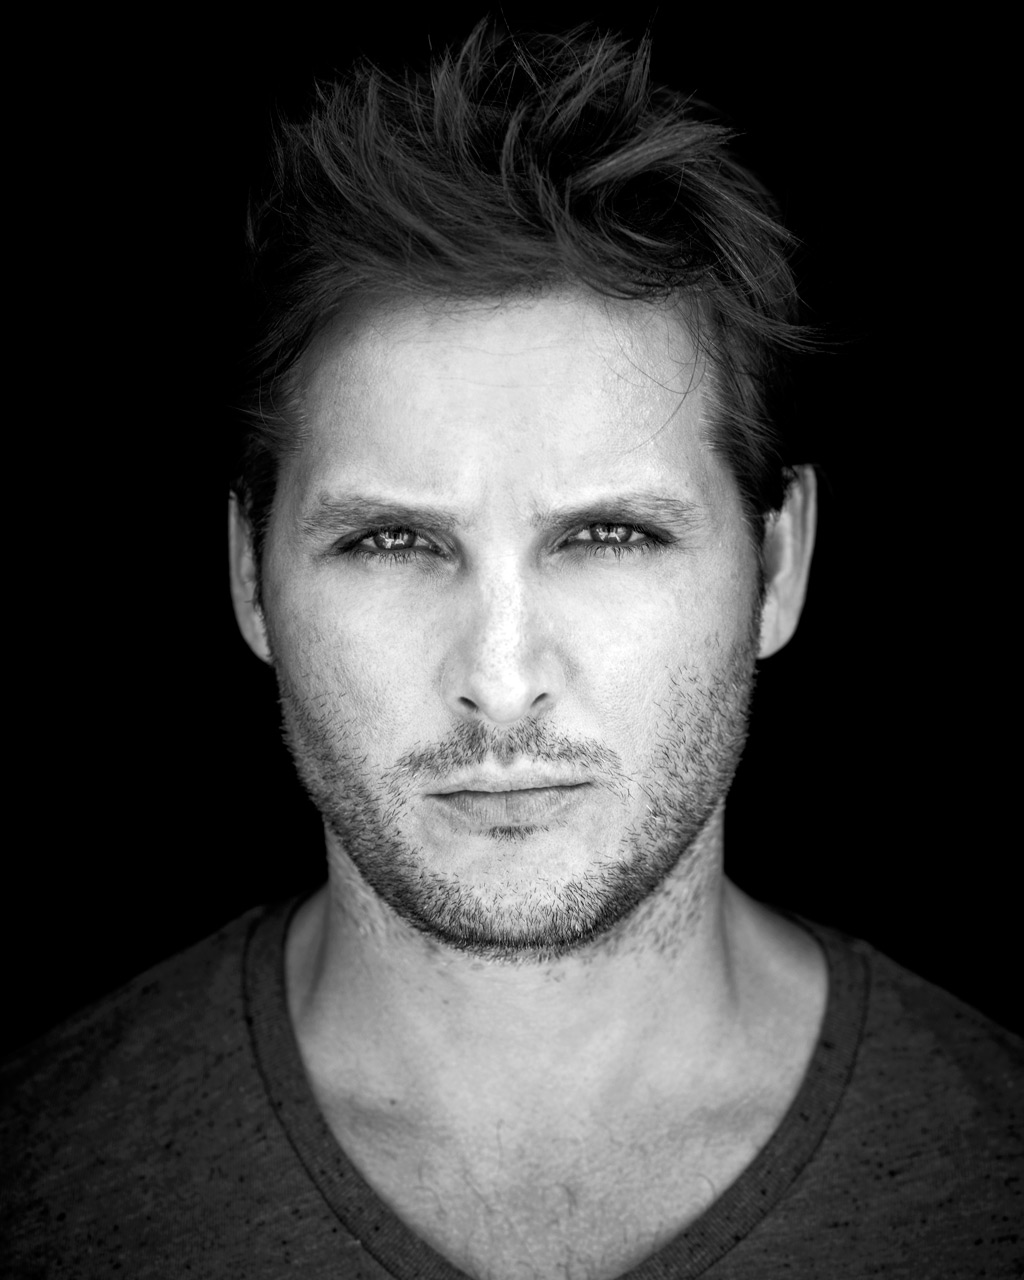 pf_06-peter-facinelli_0491